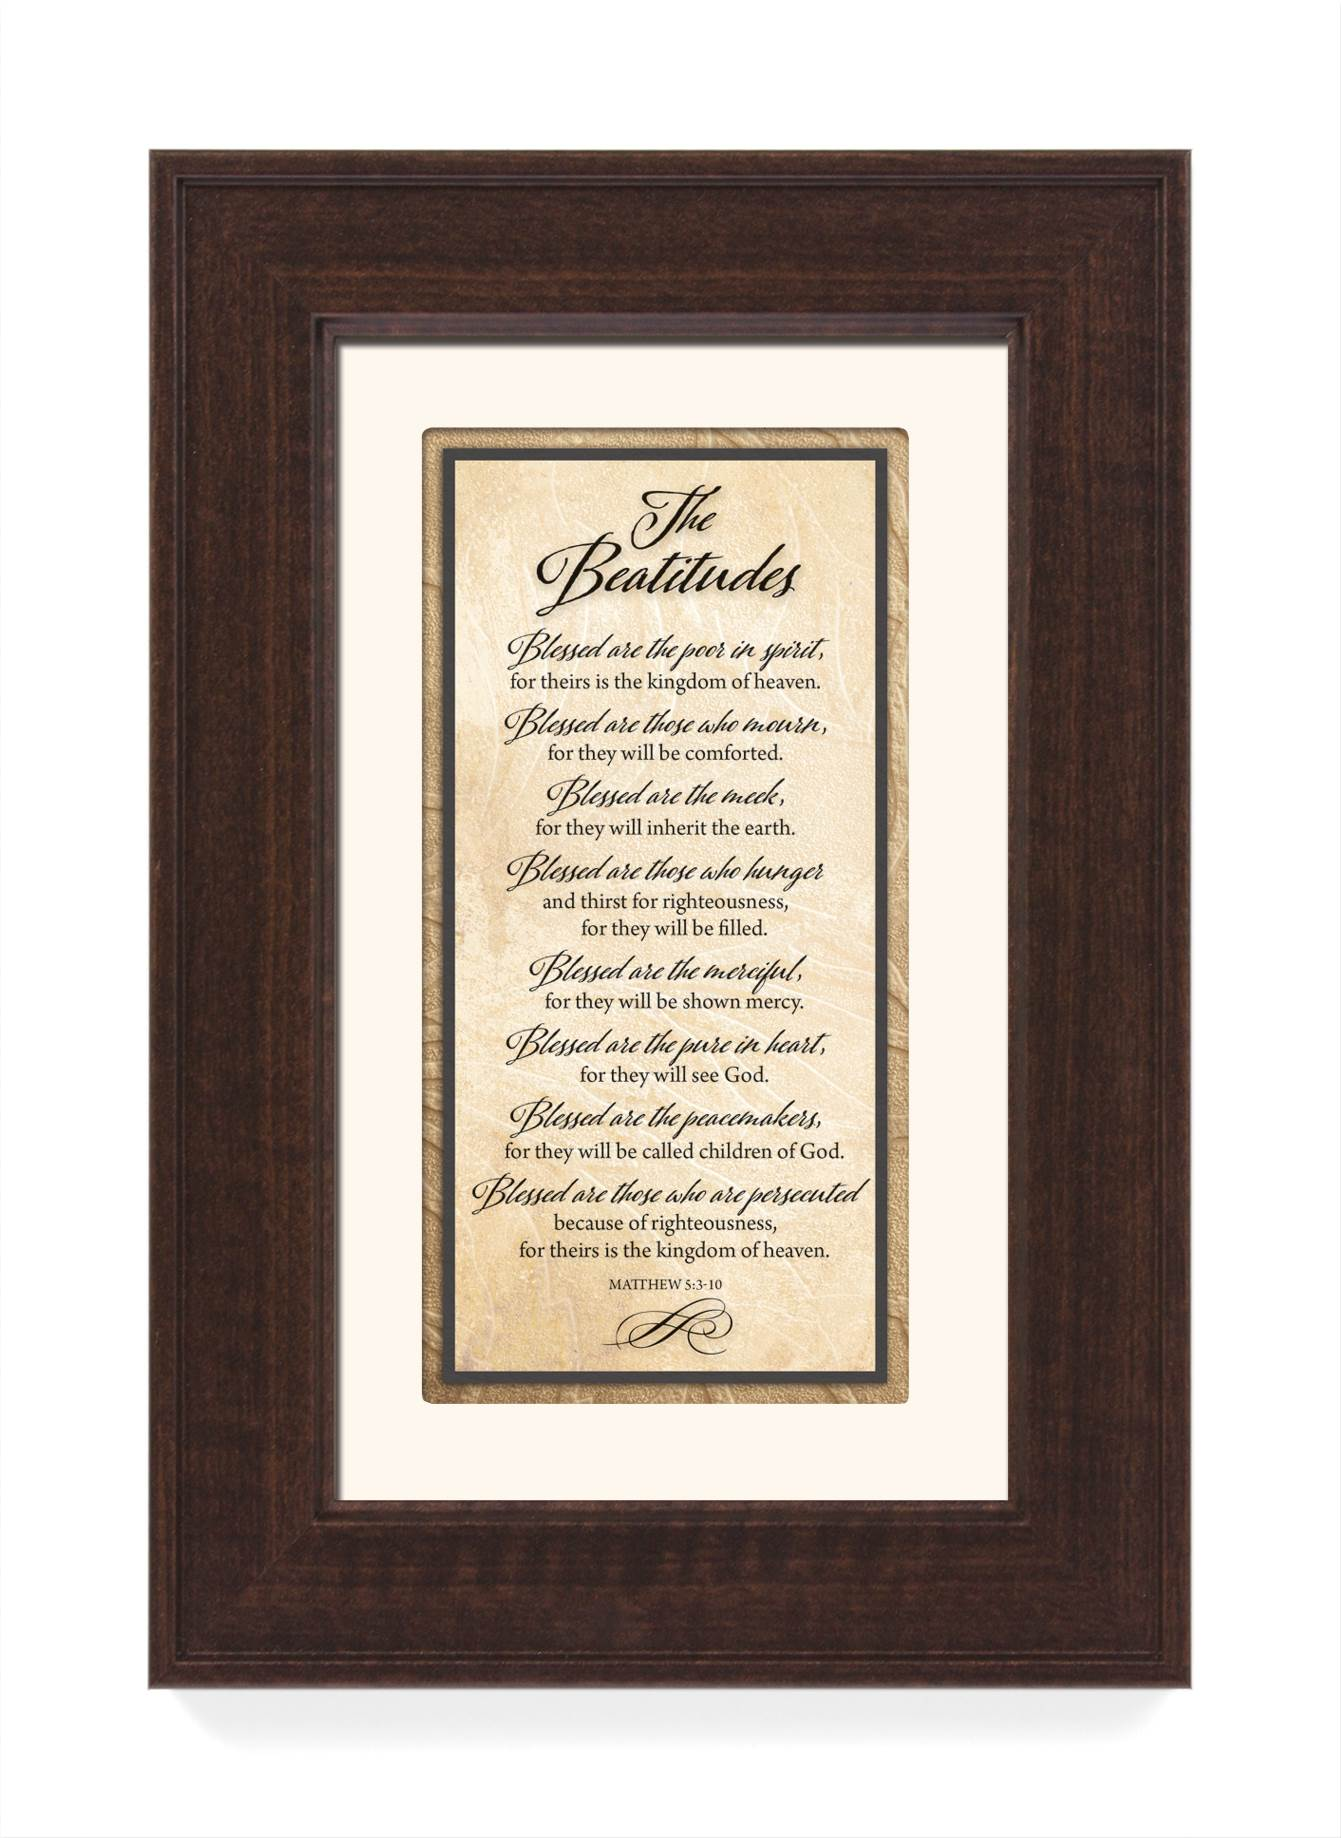 The Beatitudes Framed Decor